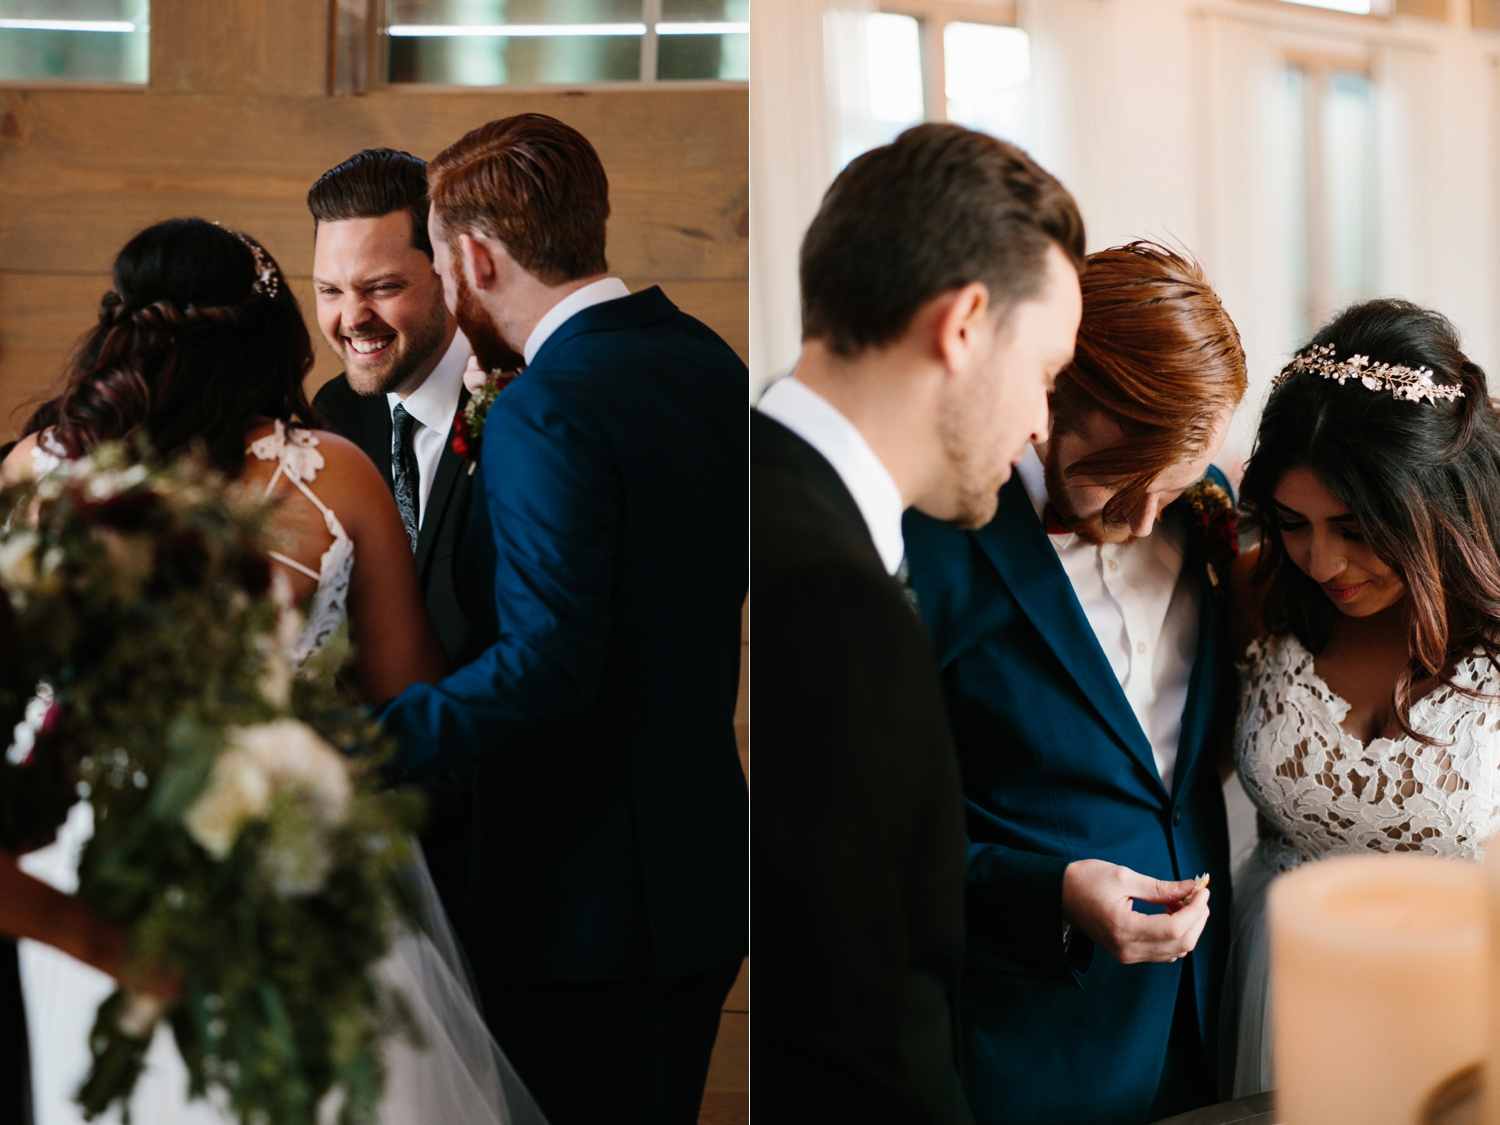 Grant + Lysette | a vibrant, deep burgundy and navy, and mixed metals wedding at Hidden Pines Chapel by North Texas Wedding Photographer Rachel Meagan Photography 097